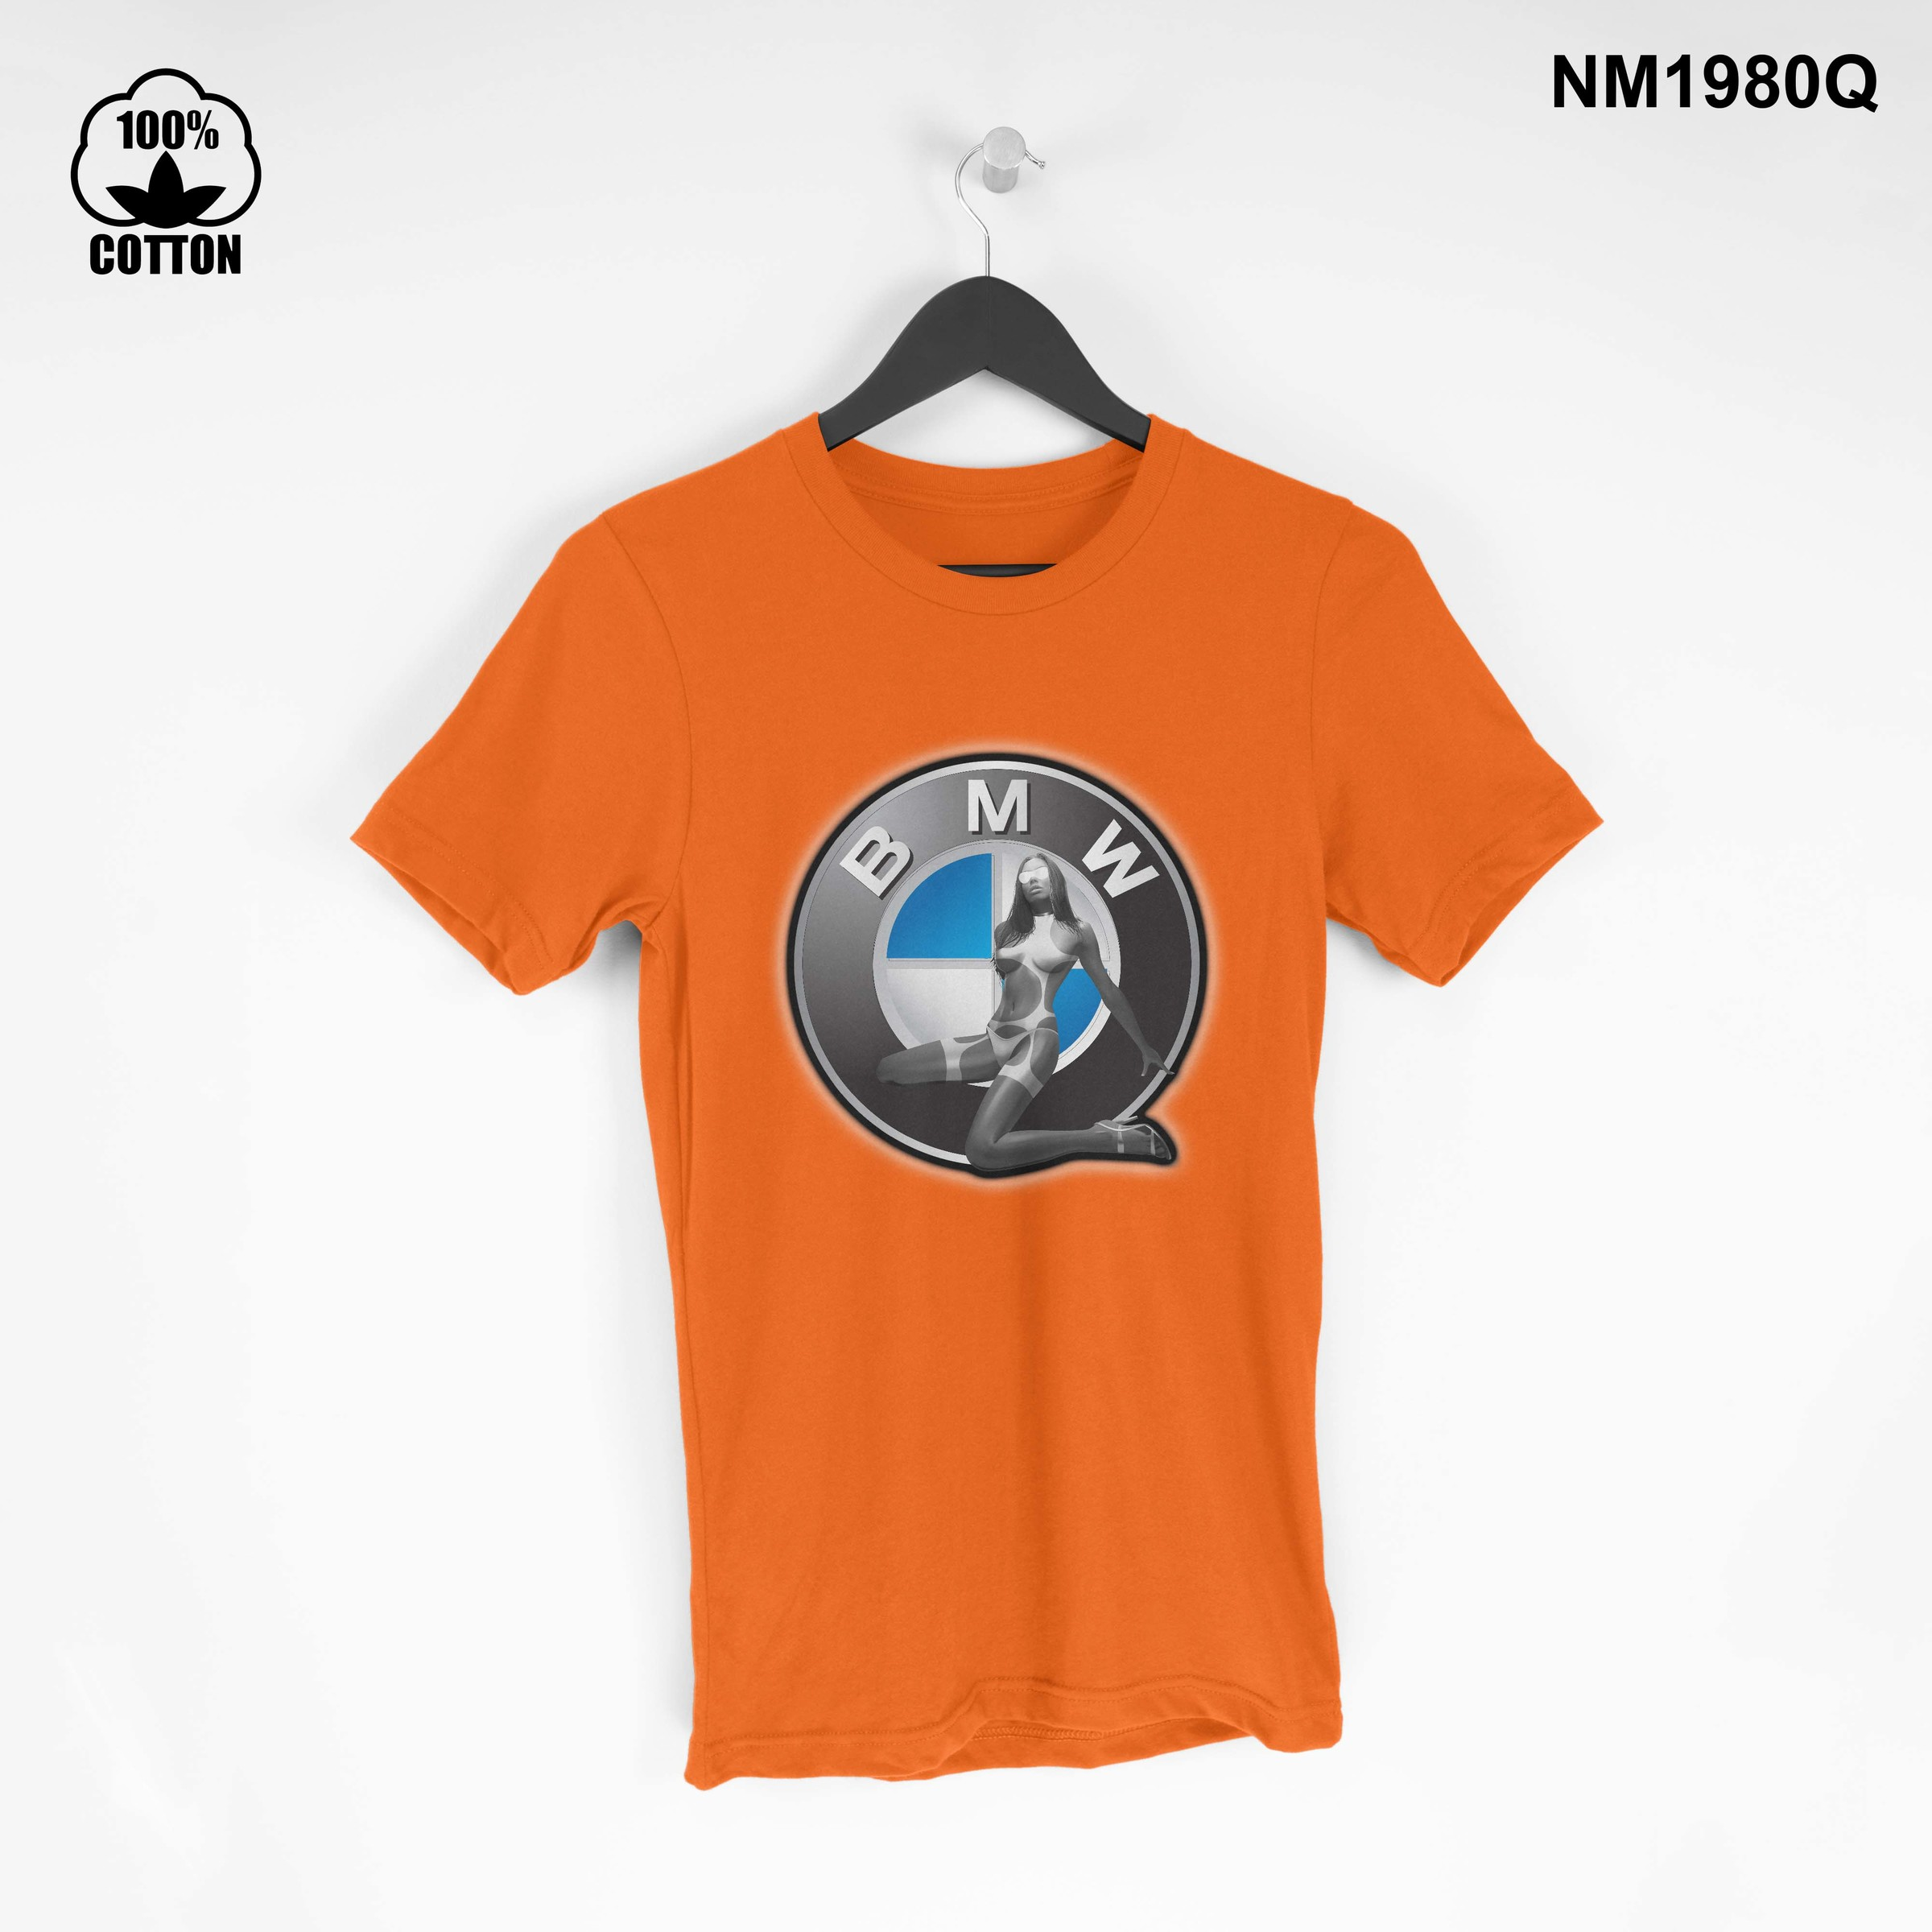 1.27 new design T Shirt Tee BMW sexy girl Short Sleeve Mens Clothing Orange.jpg